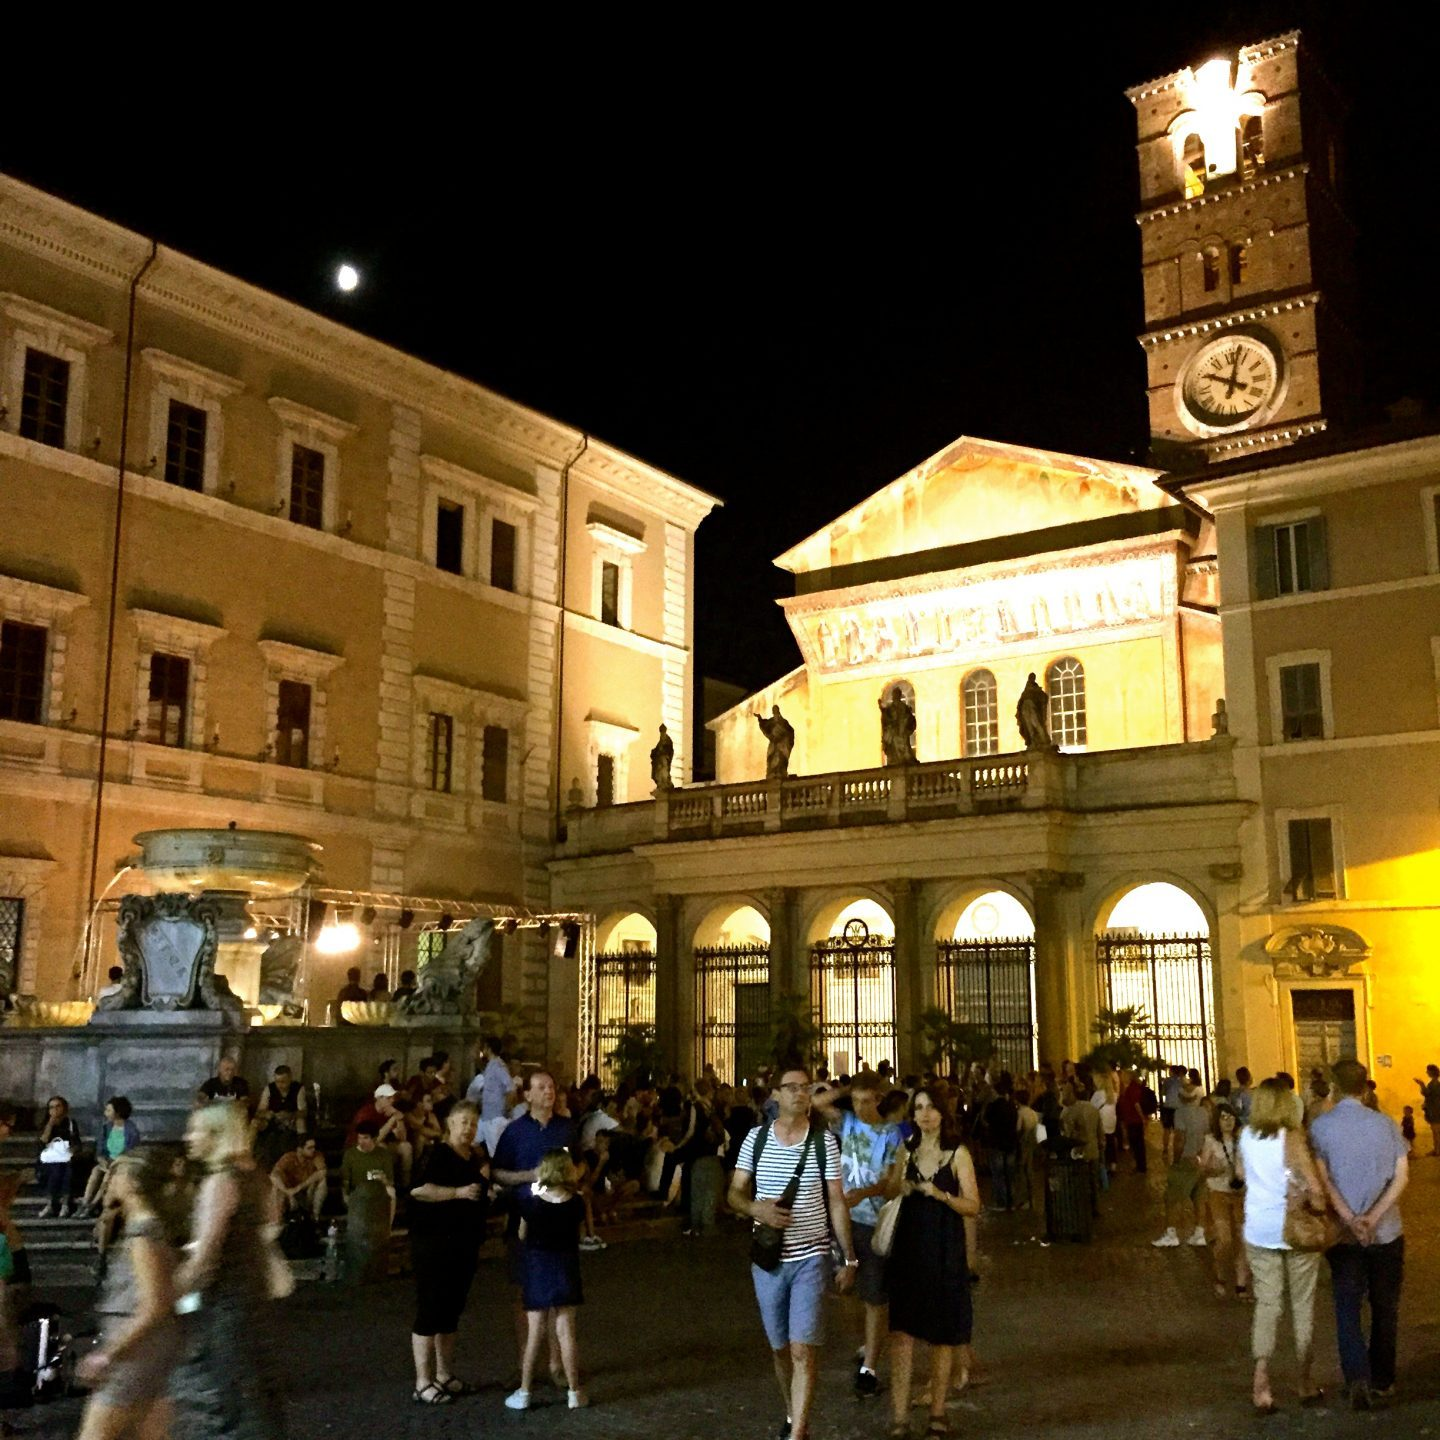 A bustling piazza in Rome lit up at night.